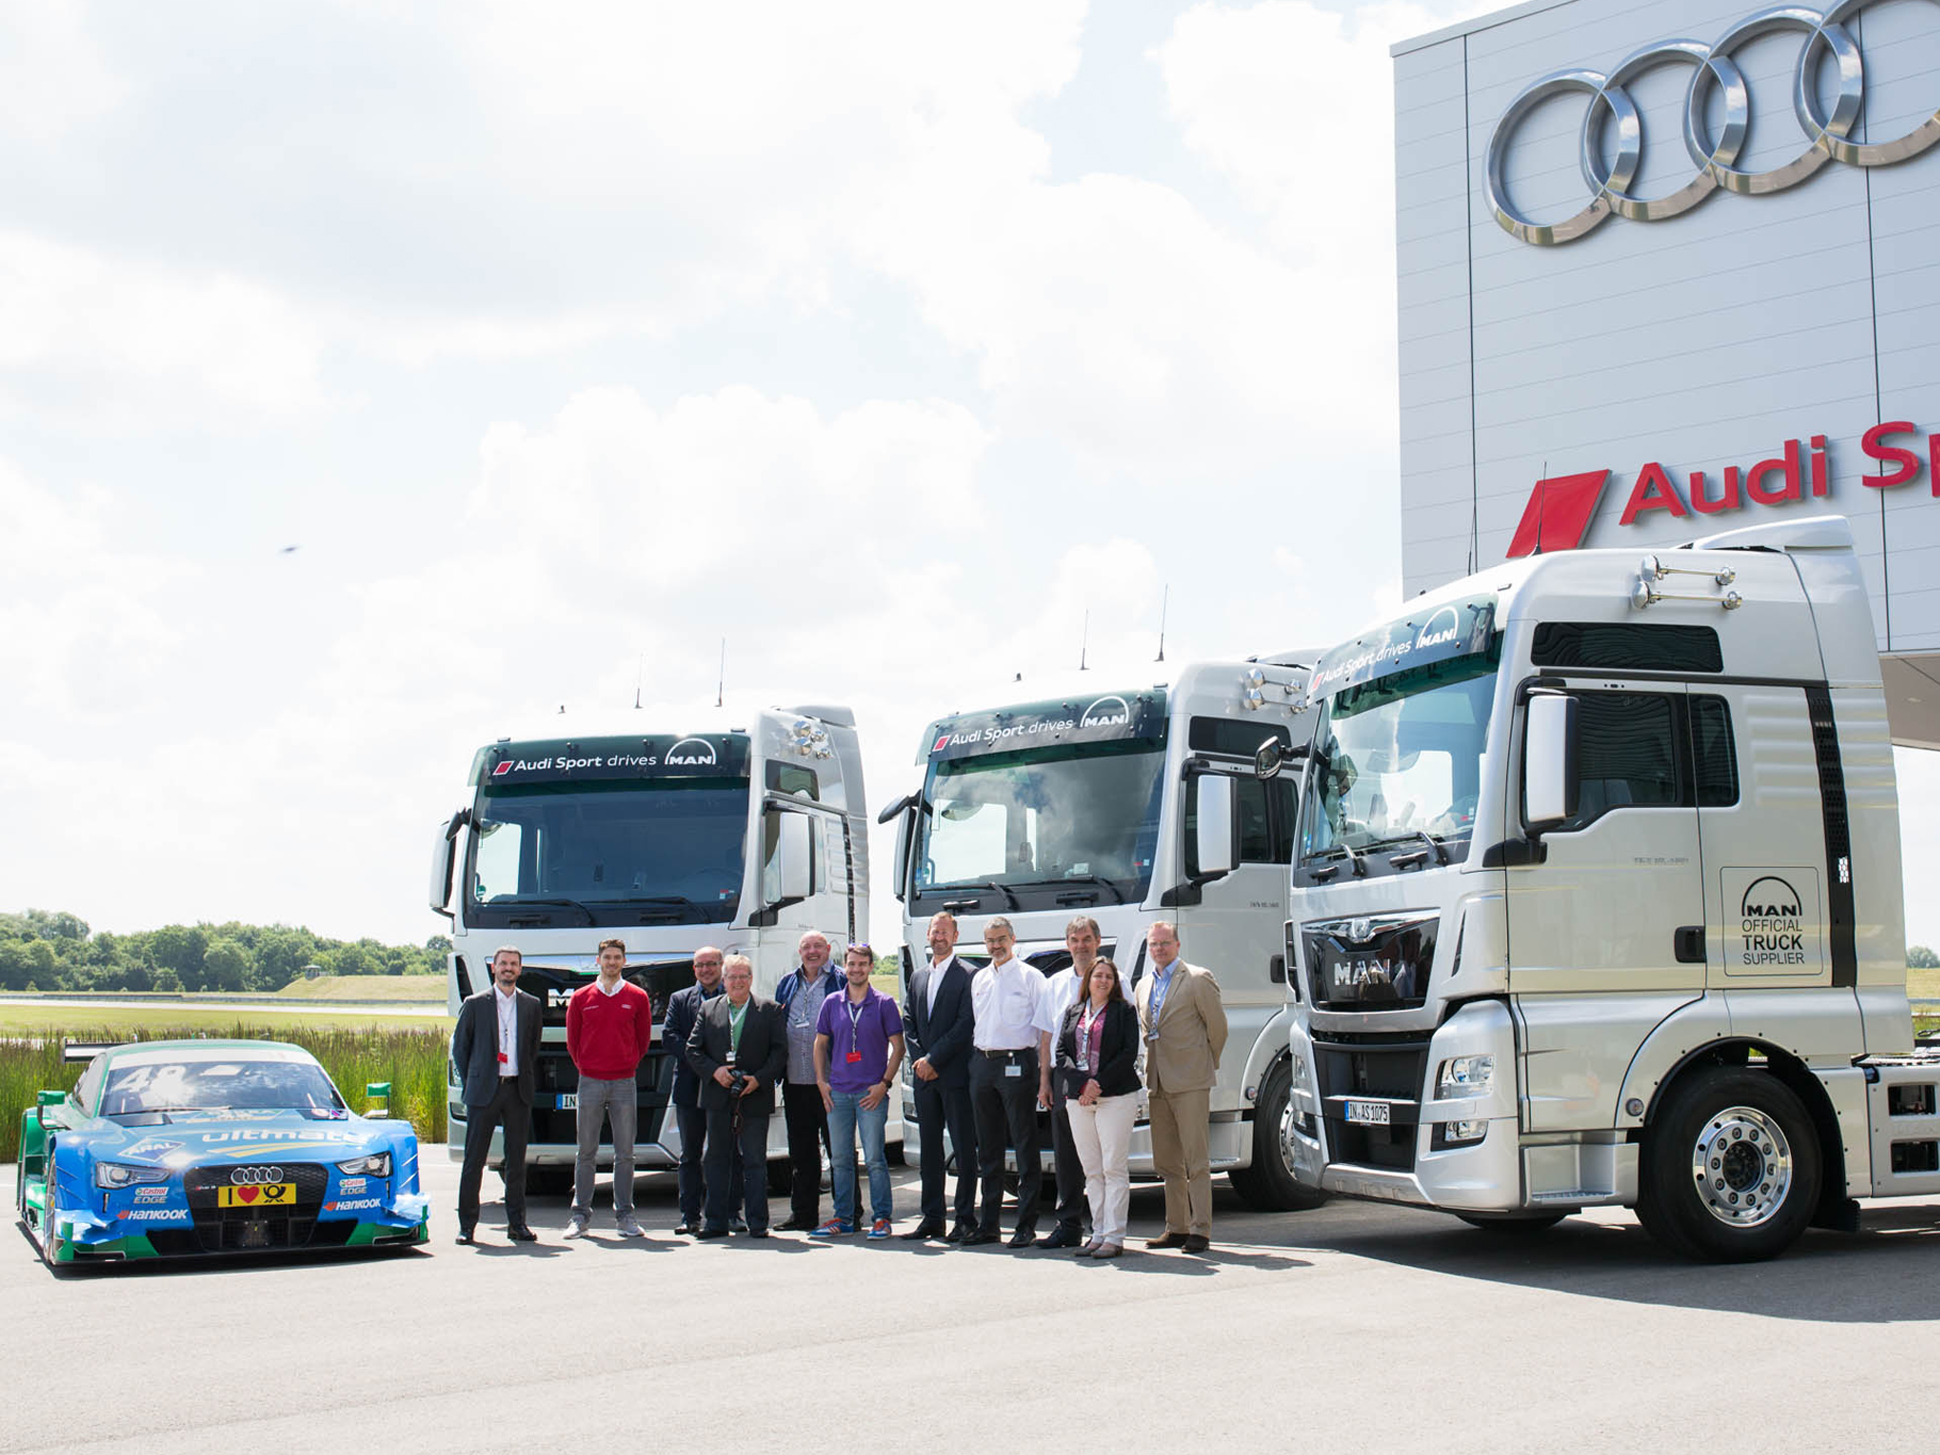 Audi Sport receives eight new MAN TGX tractor units. Representatives of Audi Sport und MAN at the handover.